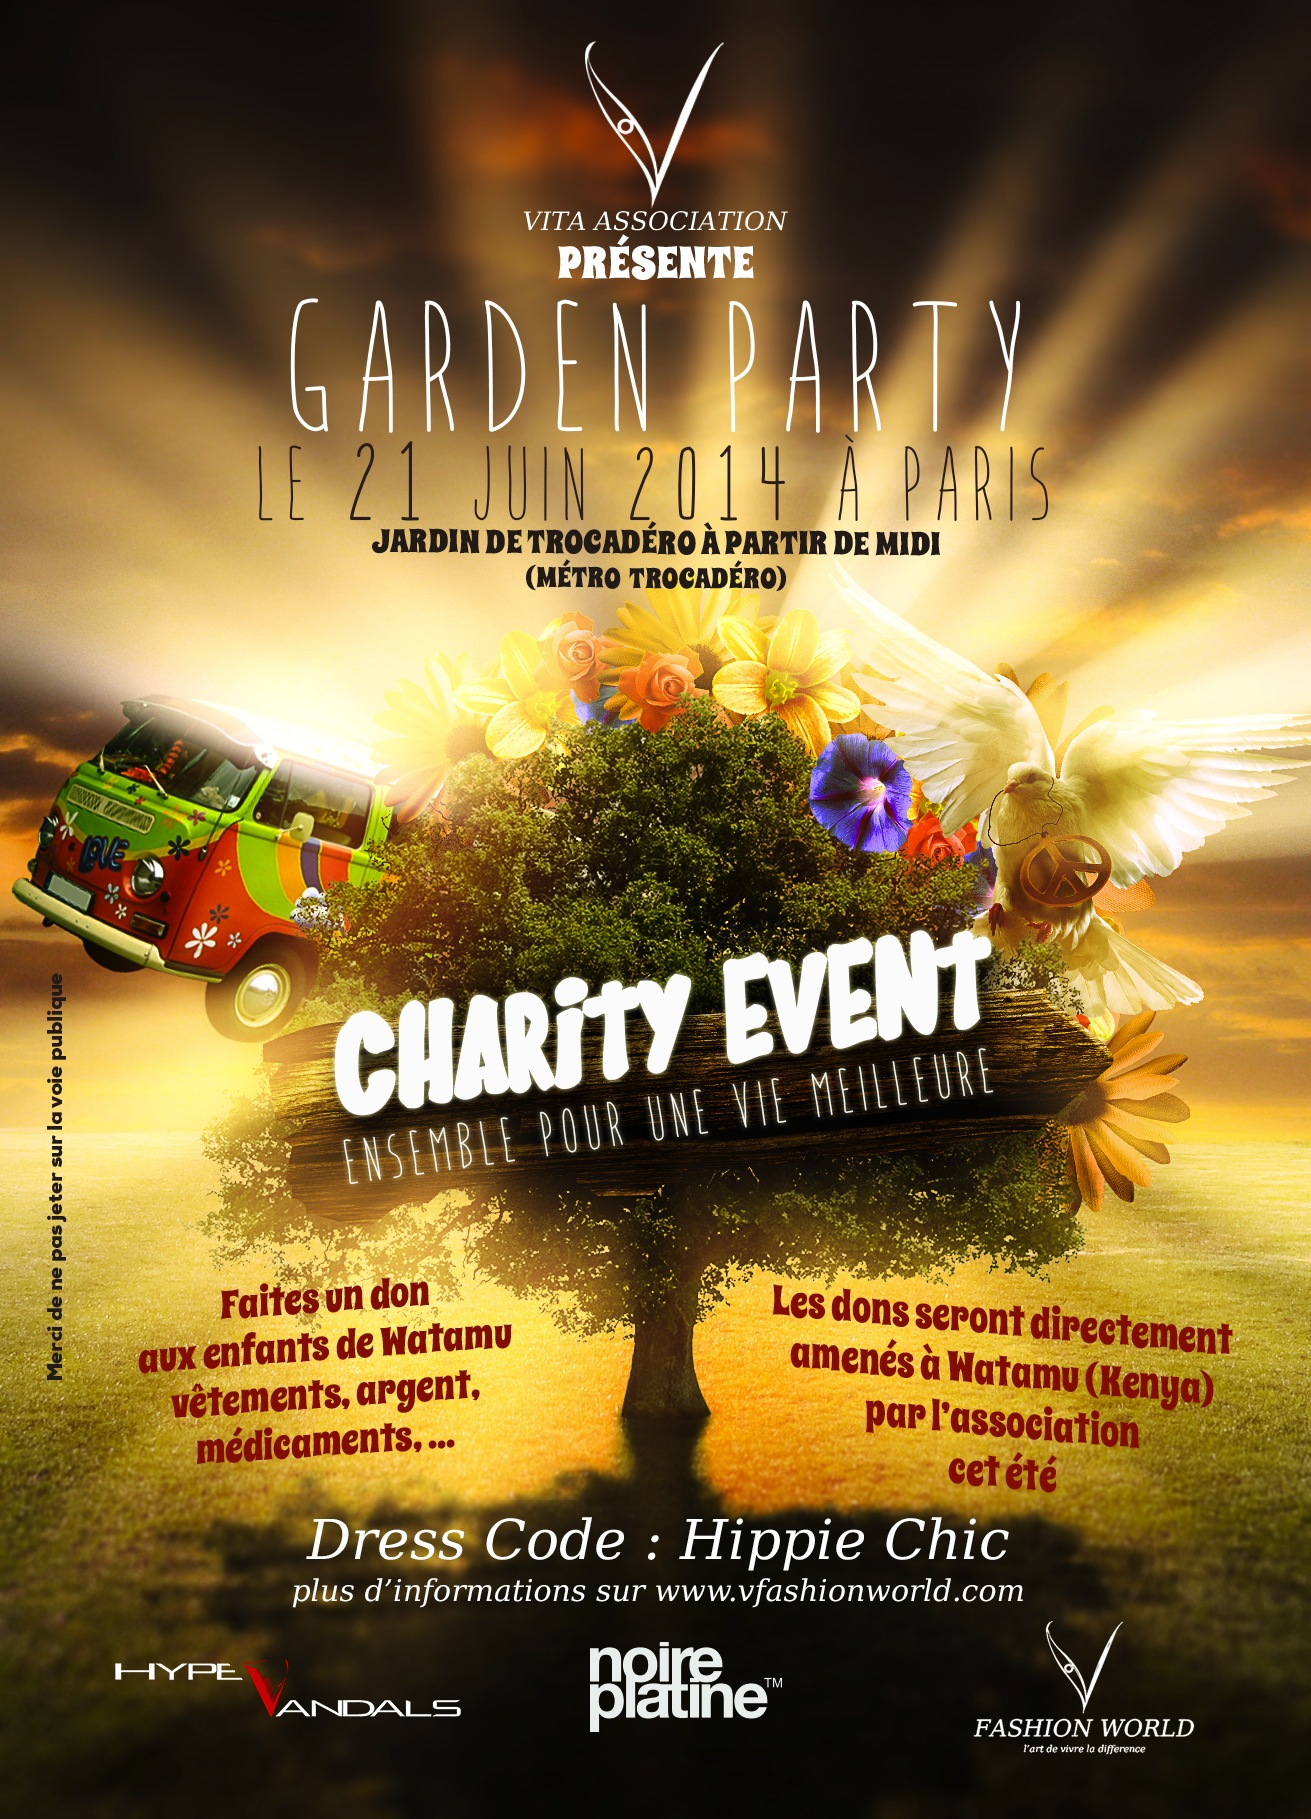 garden party charity event paris